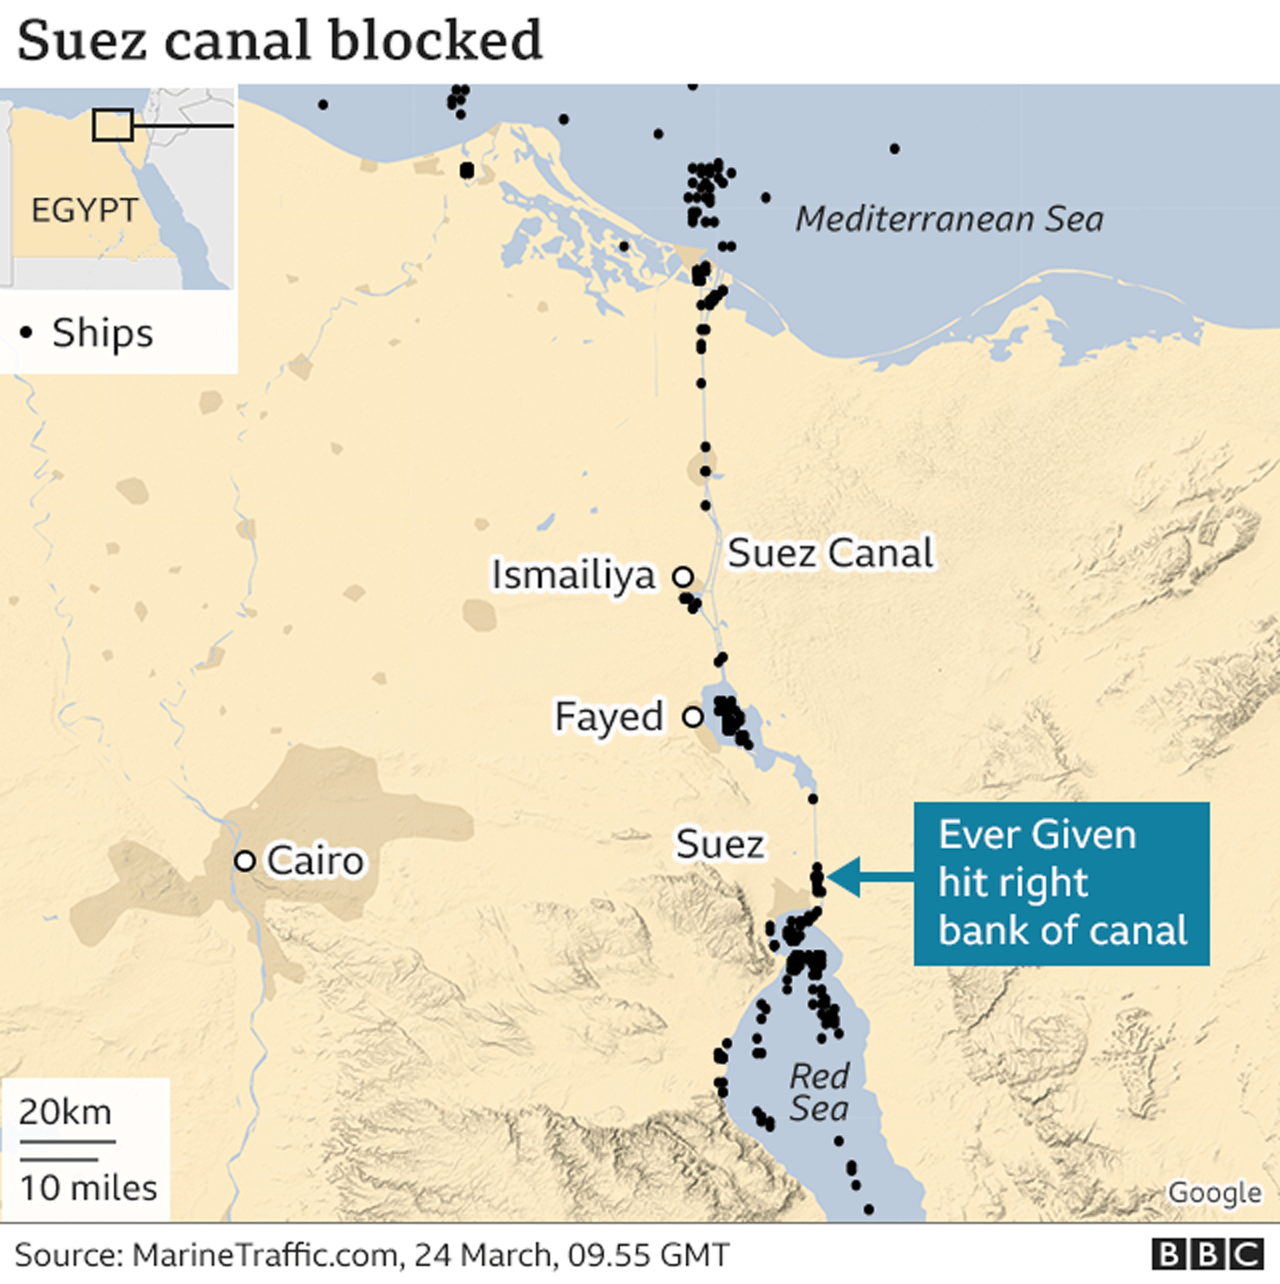 Map shows location of stuck ship in Suez Canal